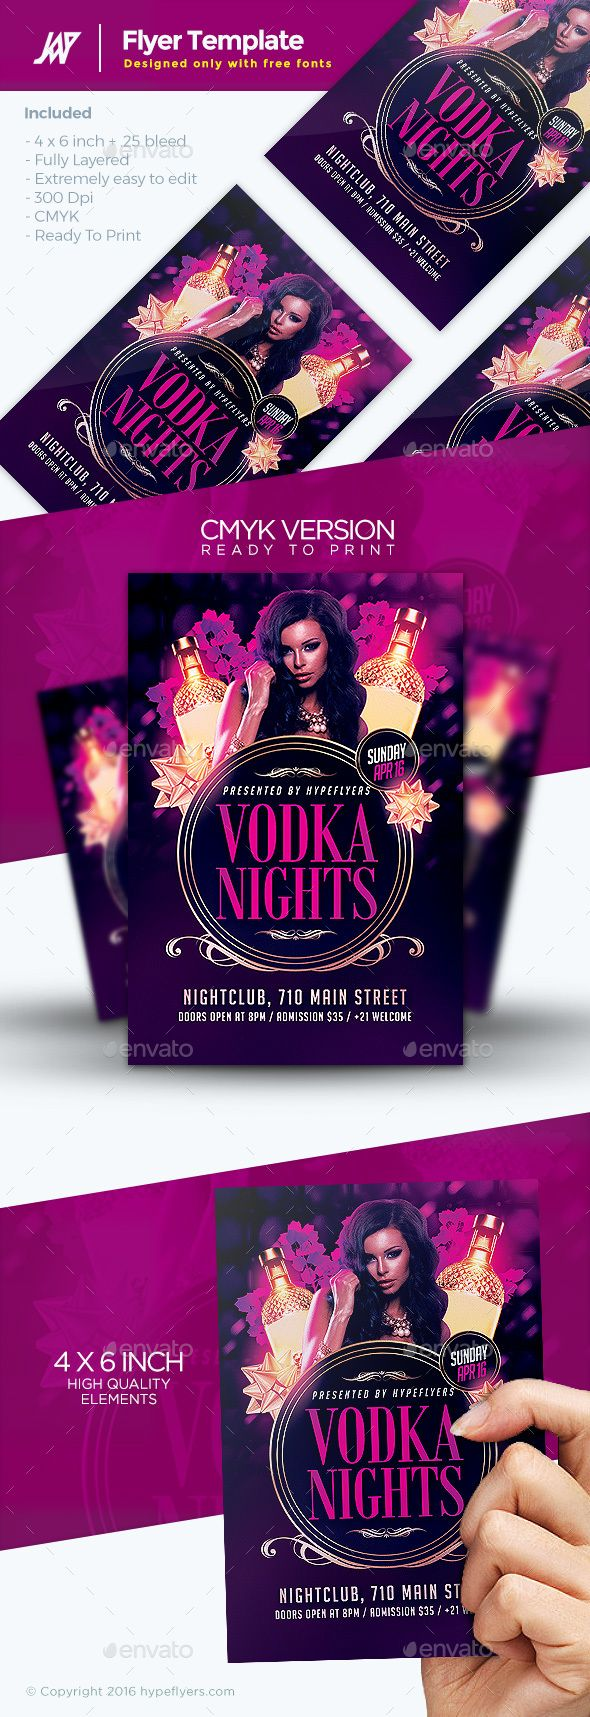 classy drinks party flyer template pinterest party flyer flyer